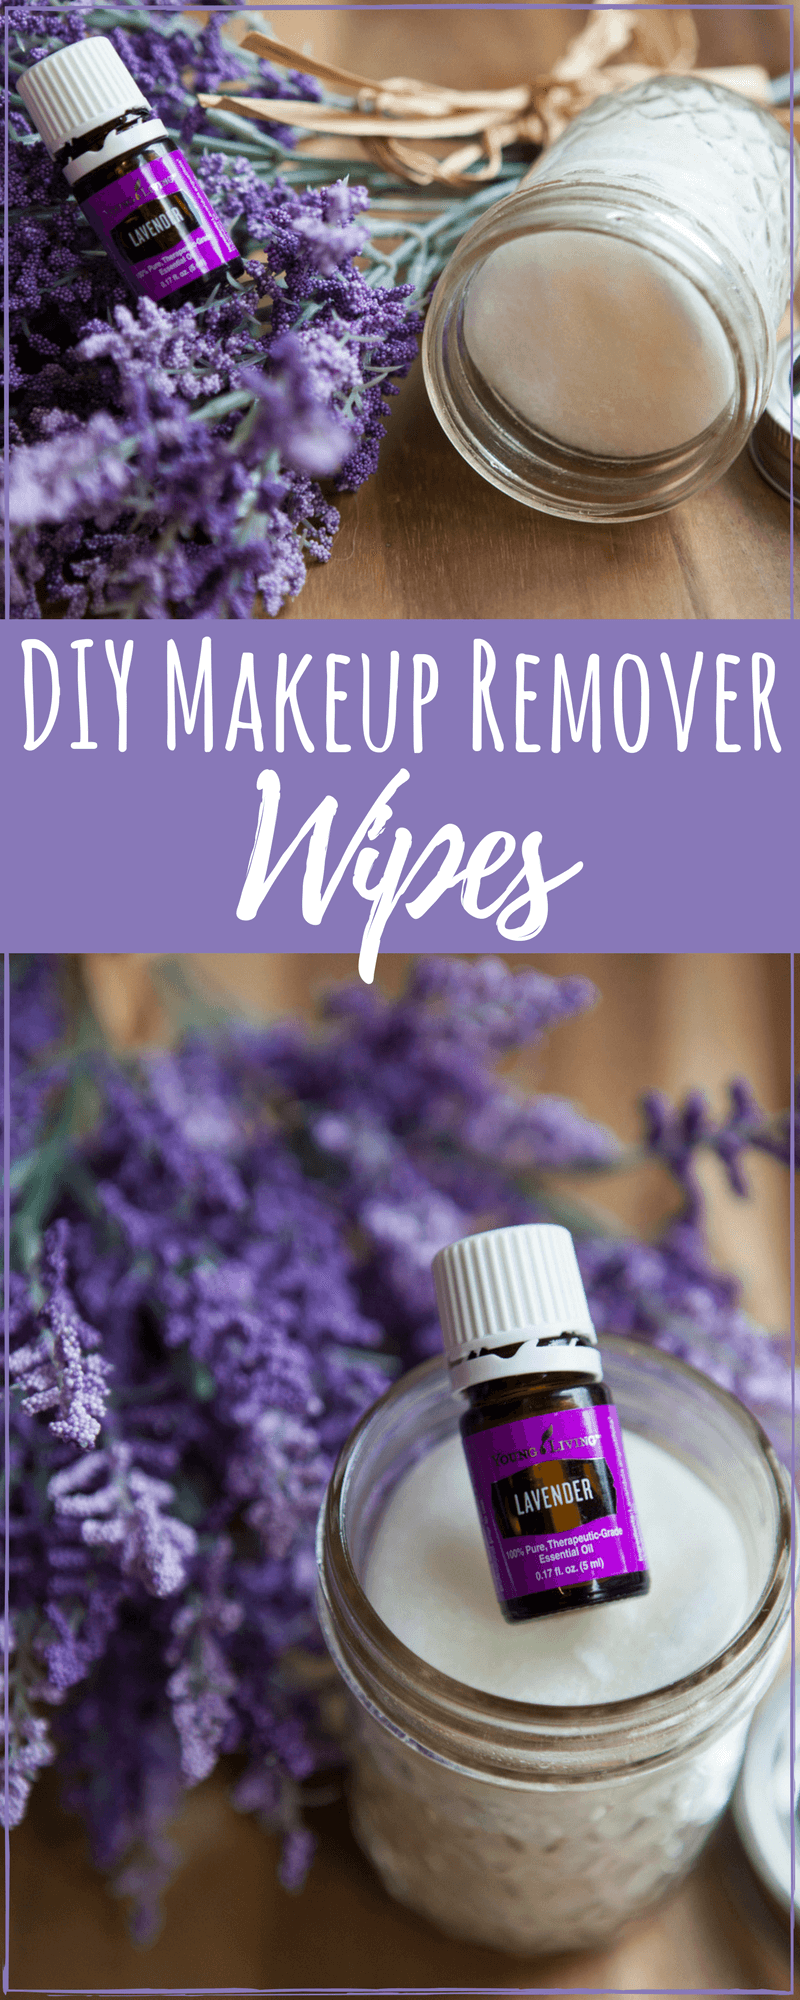 DIY beauty recipes do not have to be complicated to be effective. Using lavender essential oil you can have DIY makeup remover wipes in an instant. #antiaging  #AntiWrinkle #diyskincare #moisturizing  #skincare